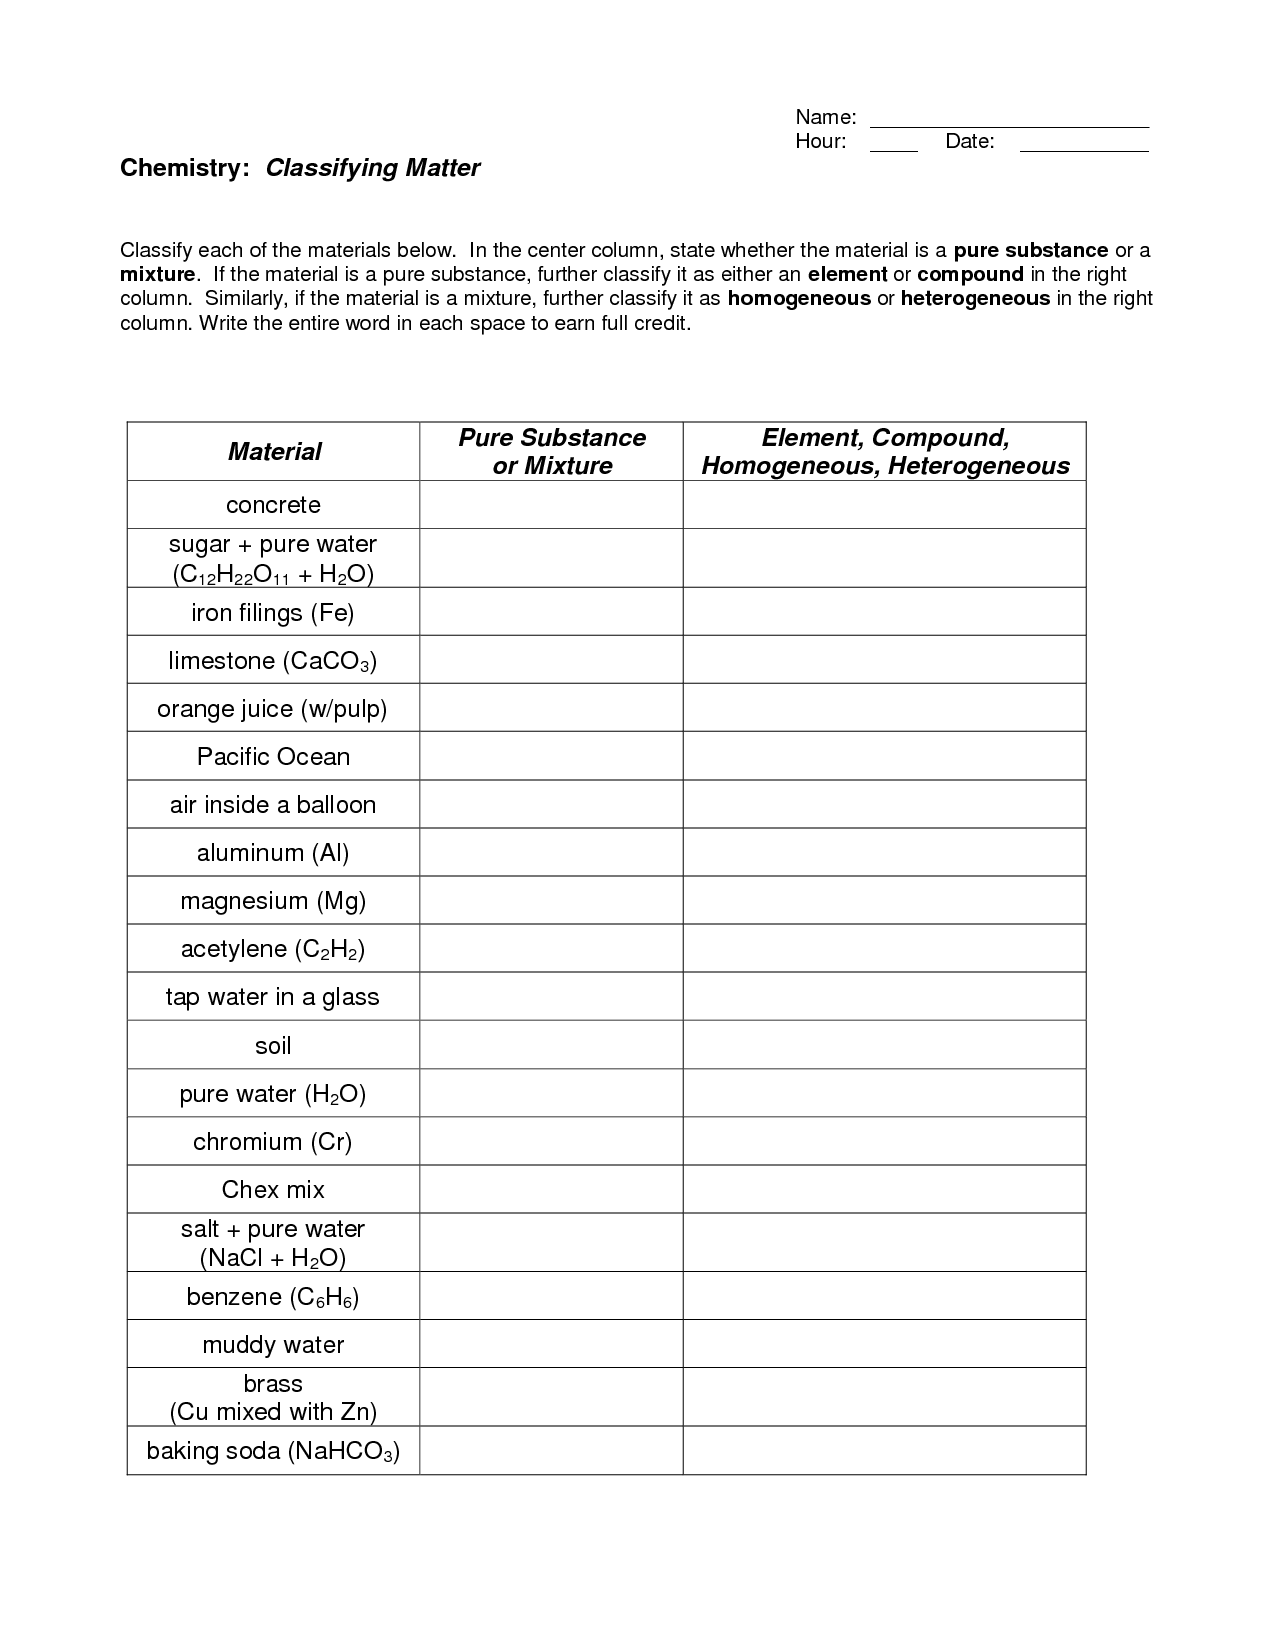 Chemistry 2 1 Properties Of Matter Worksheet Answers